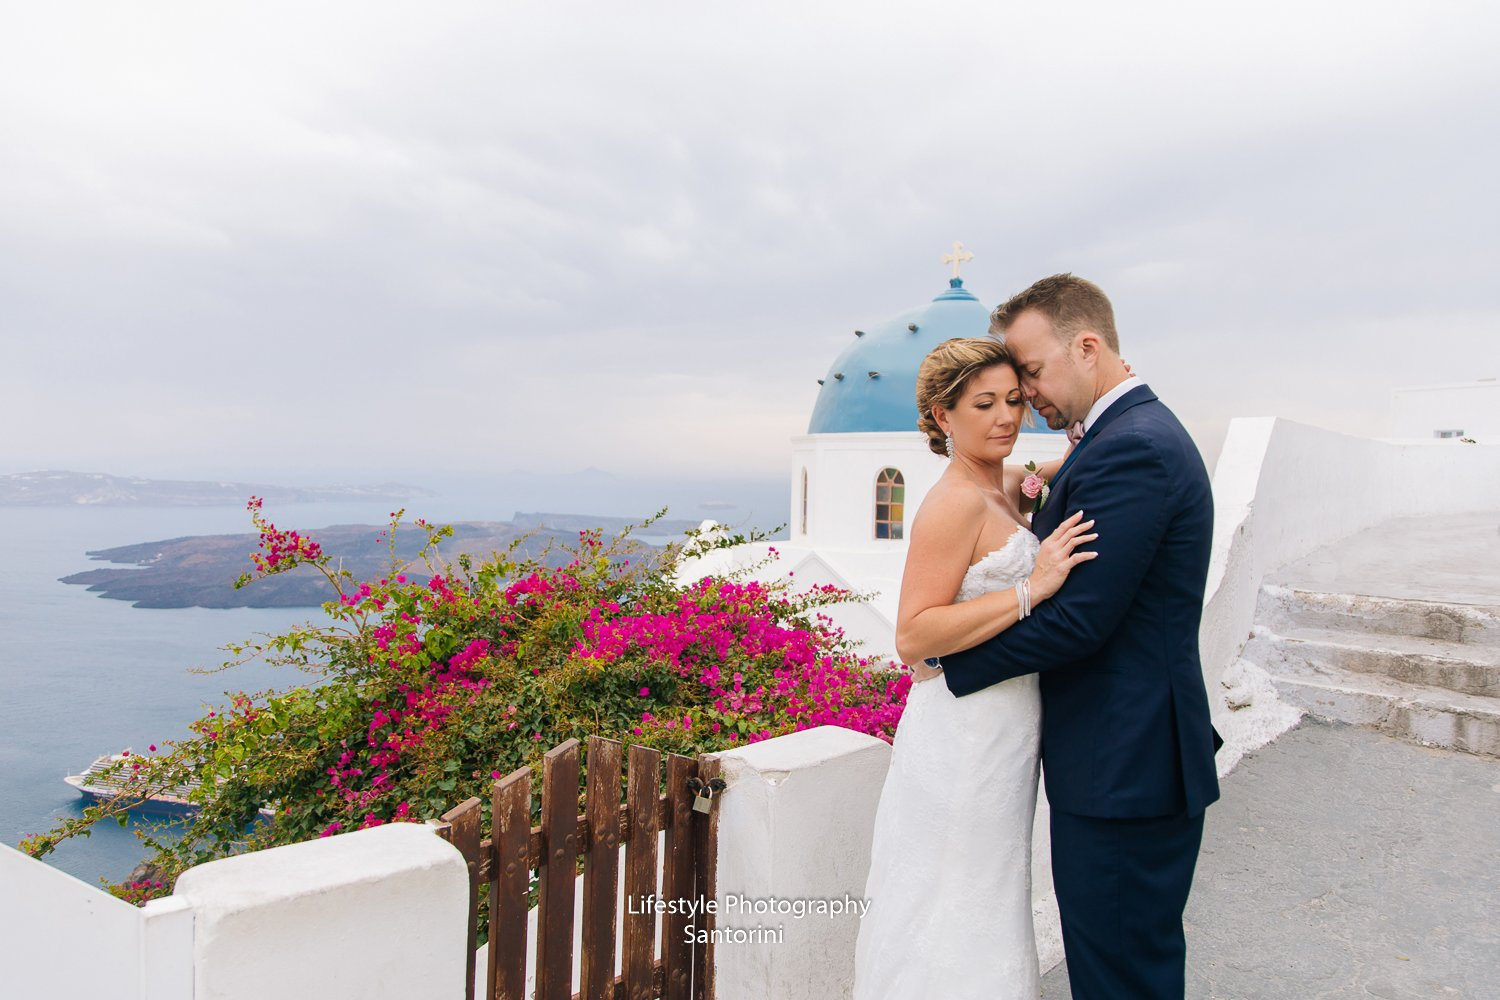 Excavate your buried Dream. Renew your vows in Santorini 4